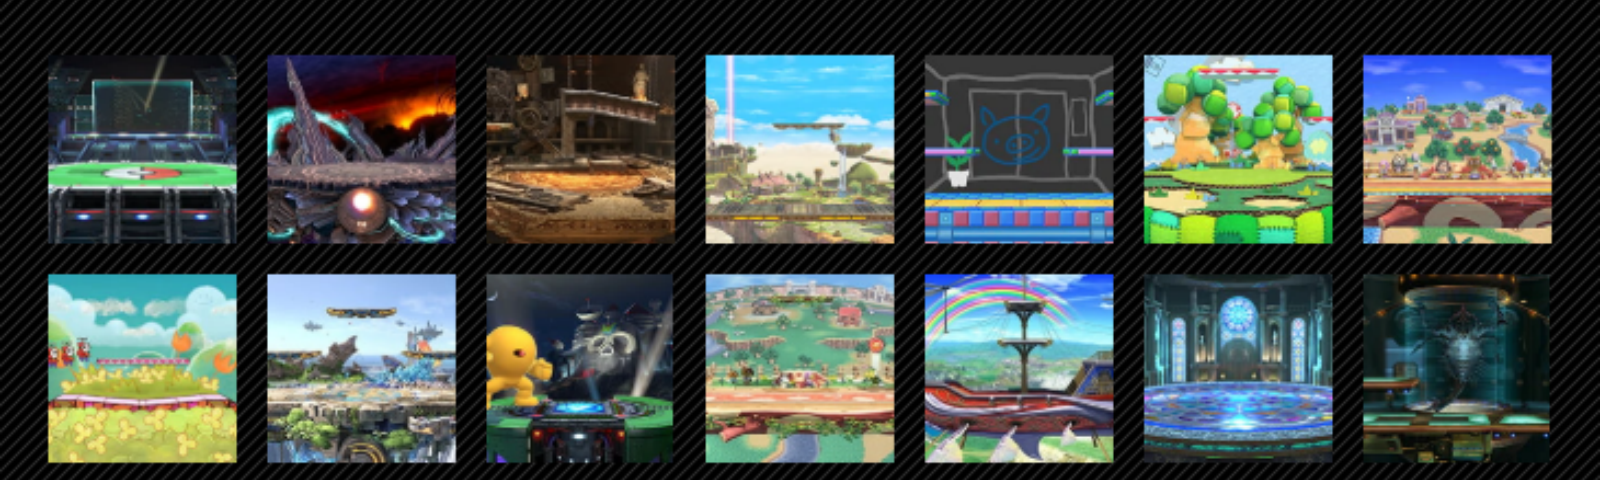 Smash Ultimate Draft Stage List With New Knowledge On Stages And By Mark Korsak Chargeshot Medium See more of acid ladder smash on facebook. smash ultimate draft stage list with